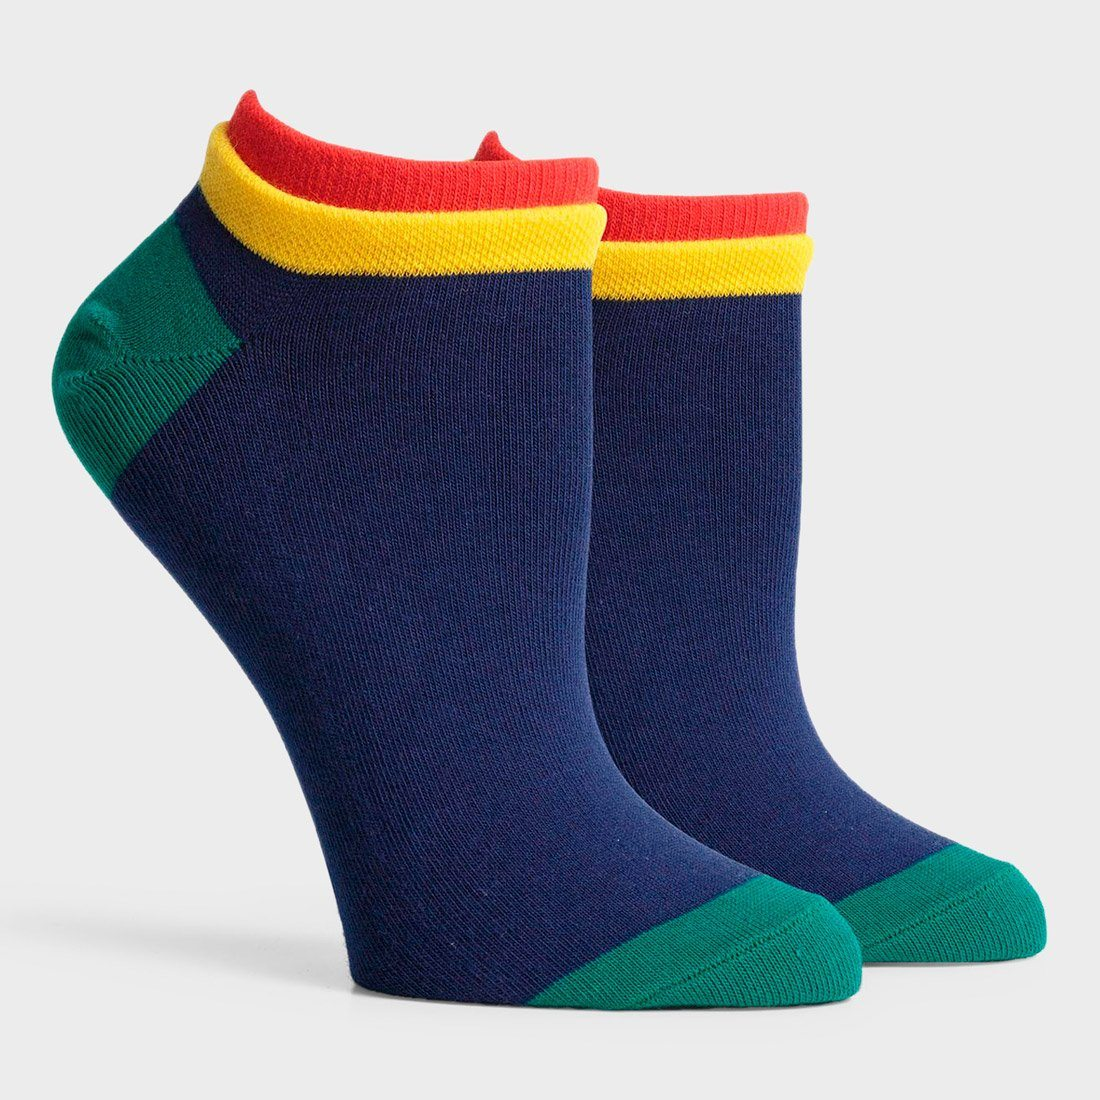 Richer Poorer Women's Cassat Low Sock Navy/ Red